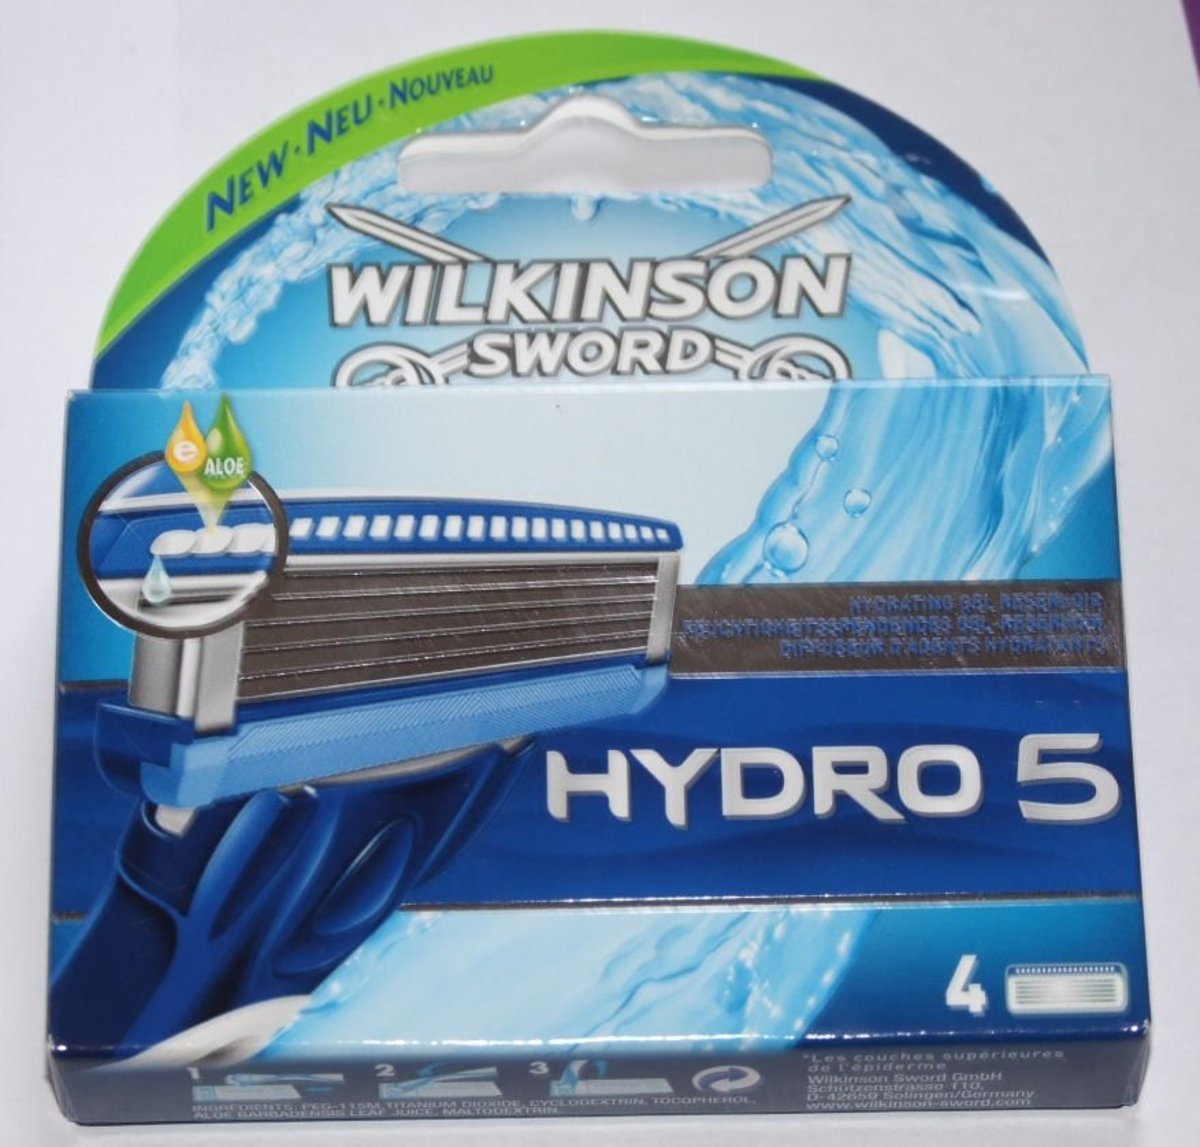 the Hydro 5 Blades